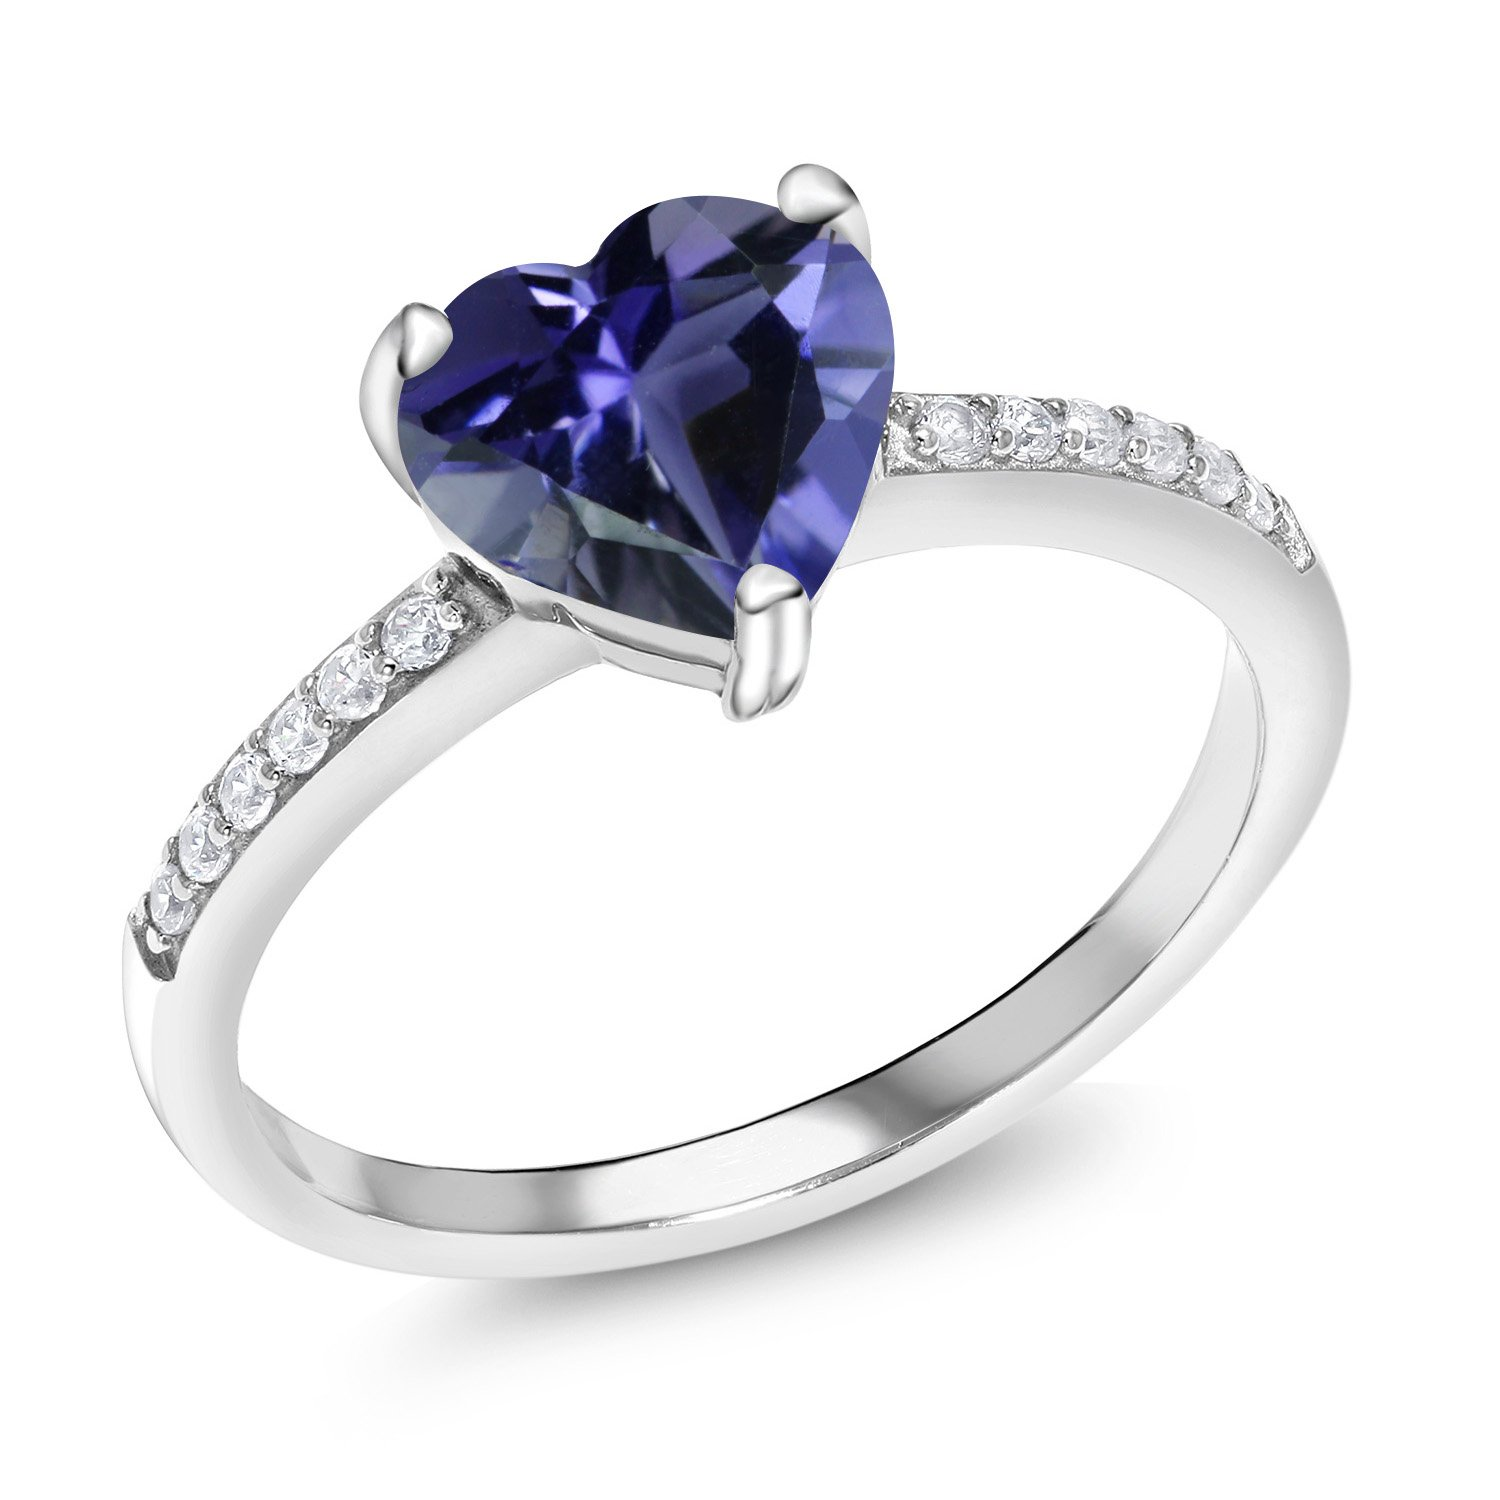 1.39 Ct Heart Shape Blue Iolite 925 Sterling Silver Ring